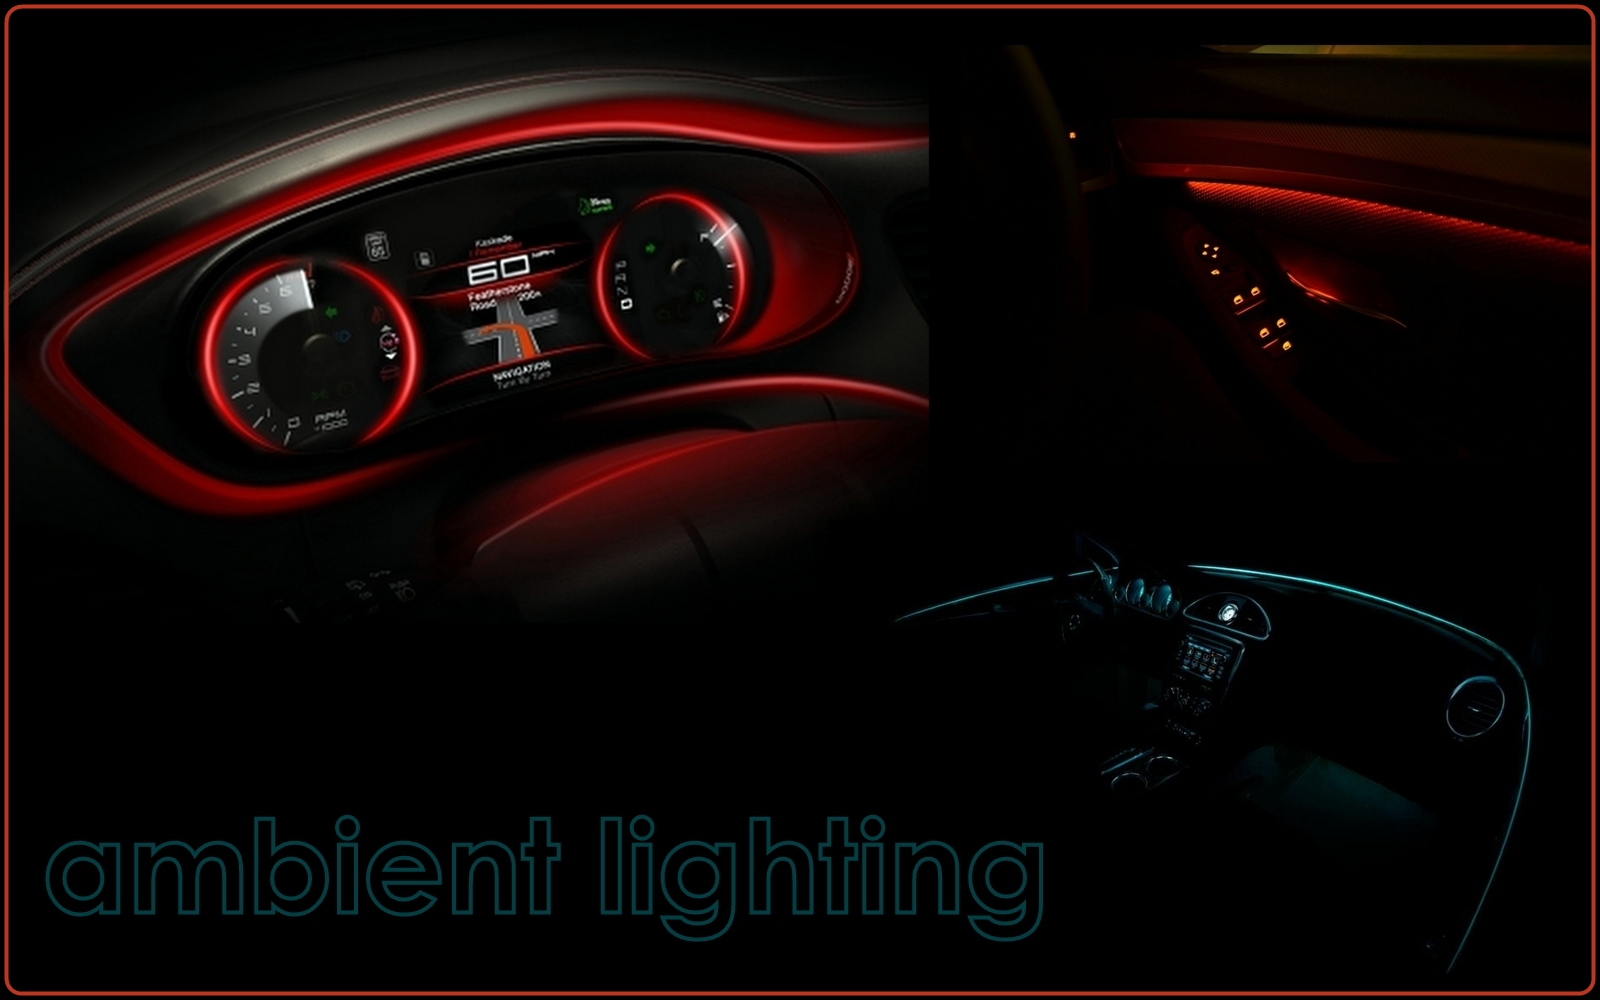 innovative interior lighting creates style and ambience that car buyers loveambient lighting ambient lighting creates